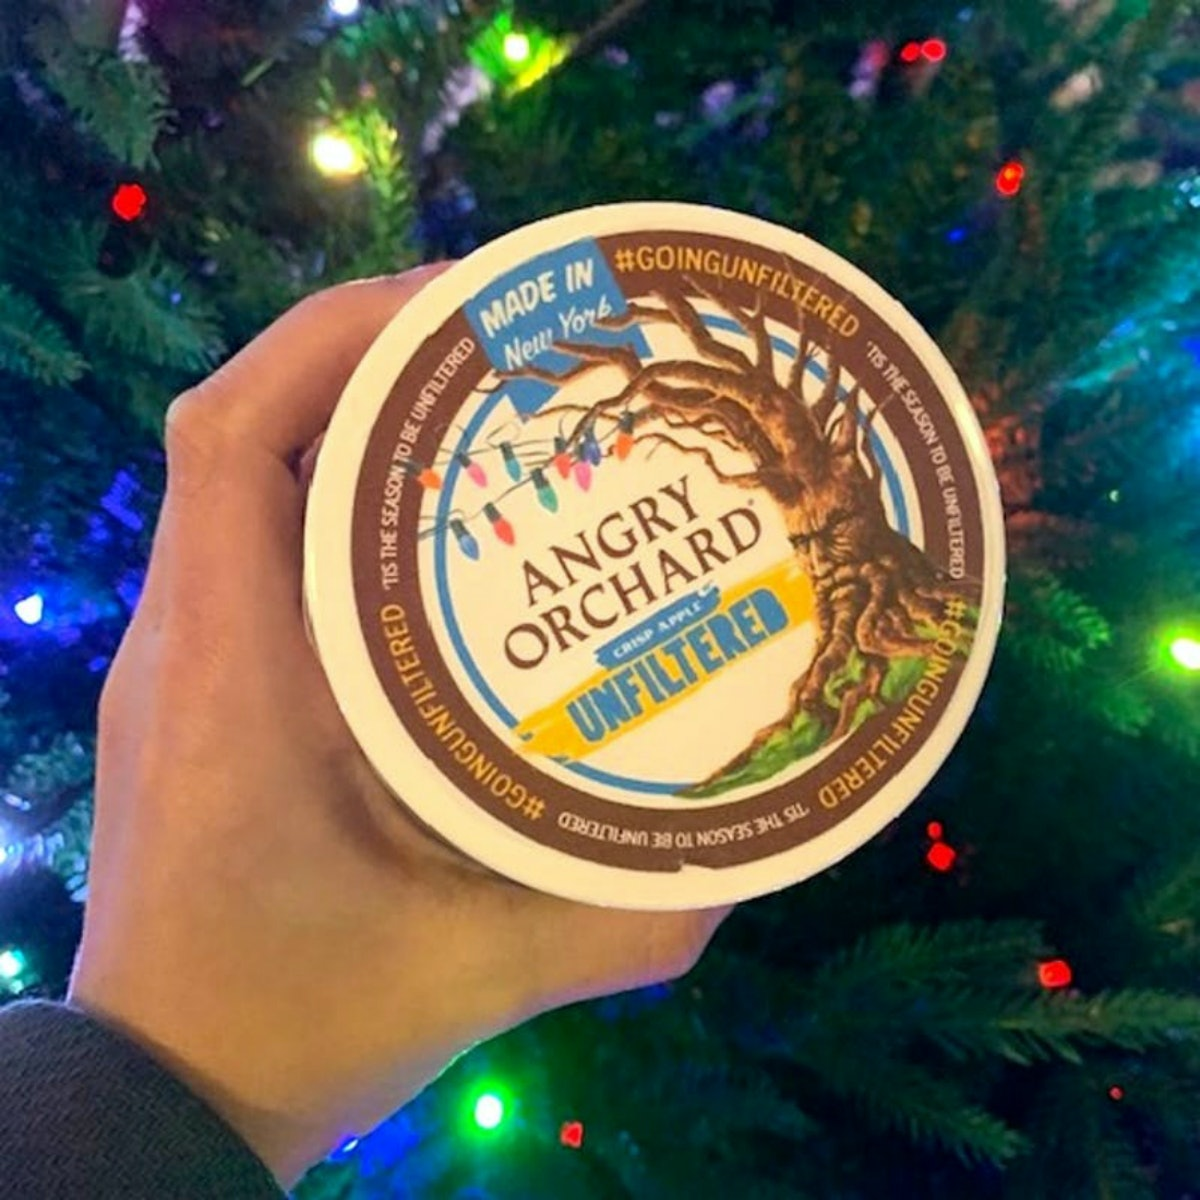 Tipsy Scoop's Angry Orchard Unfiltered Boozy Cider Ice Cream is here to make your holidays bright.